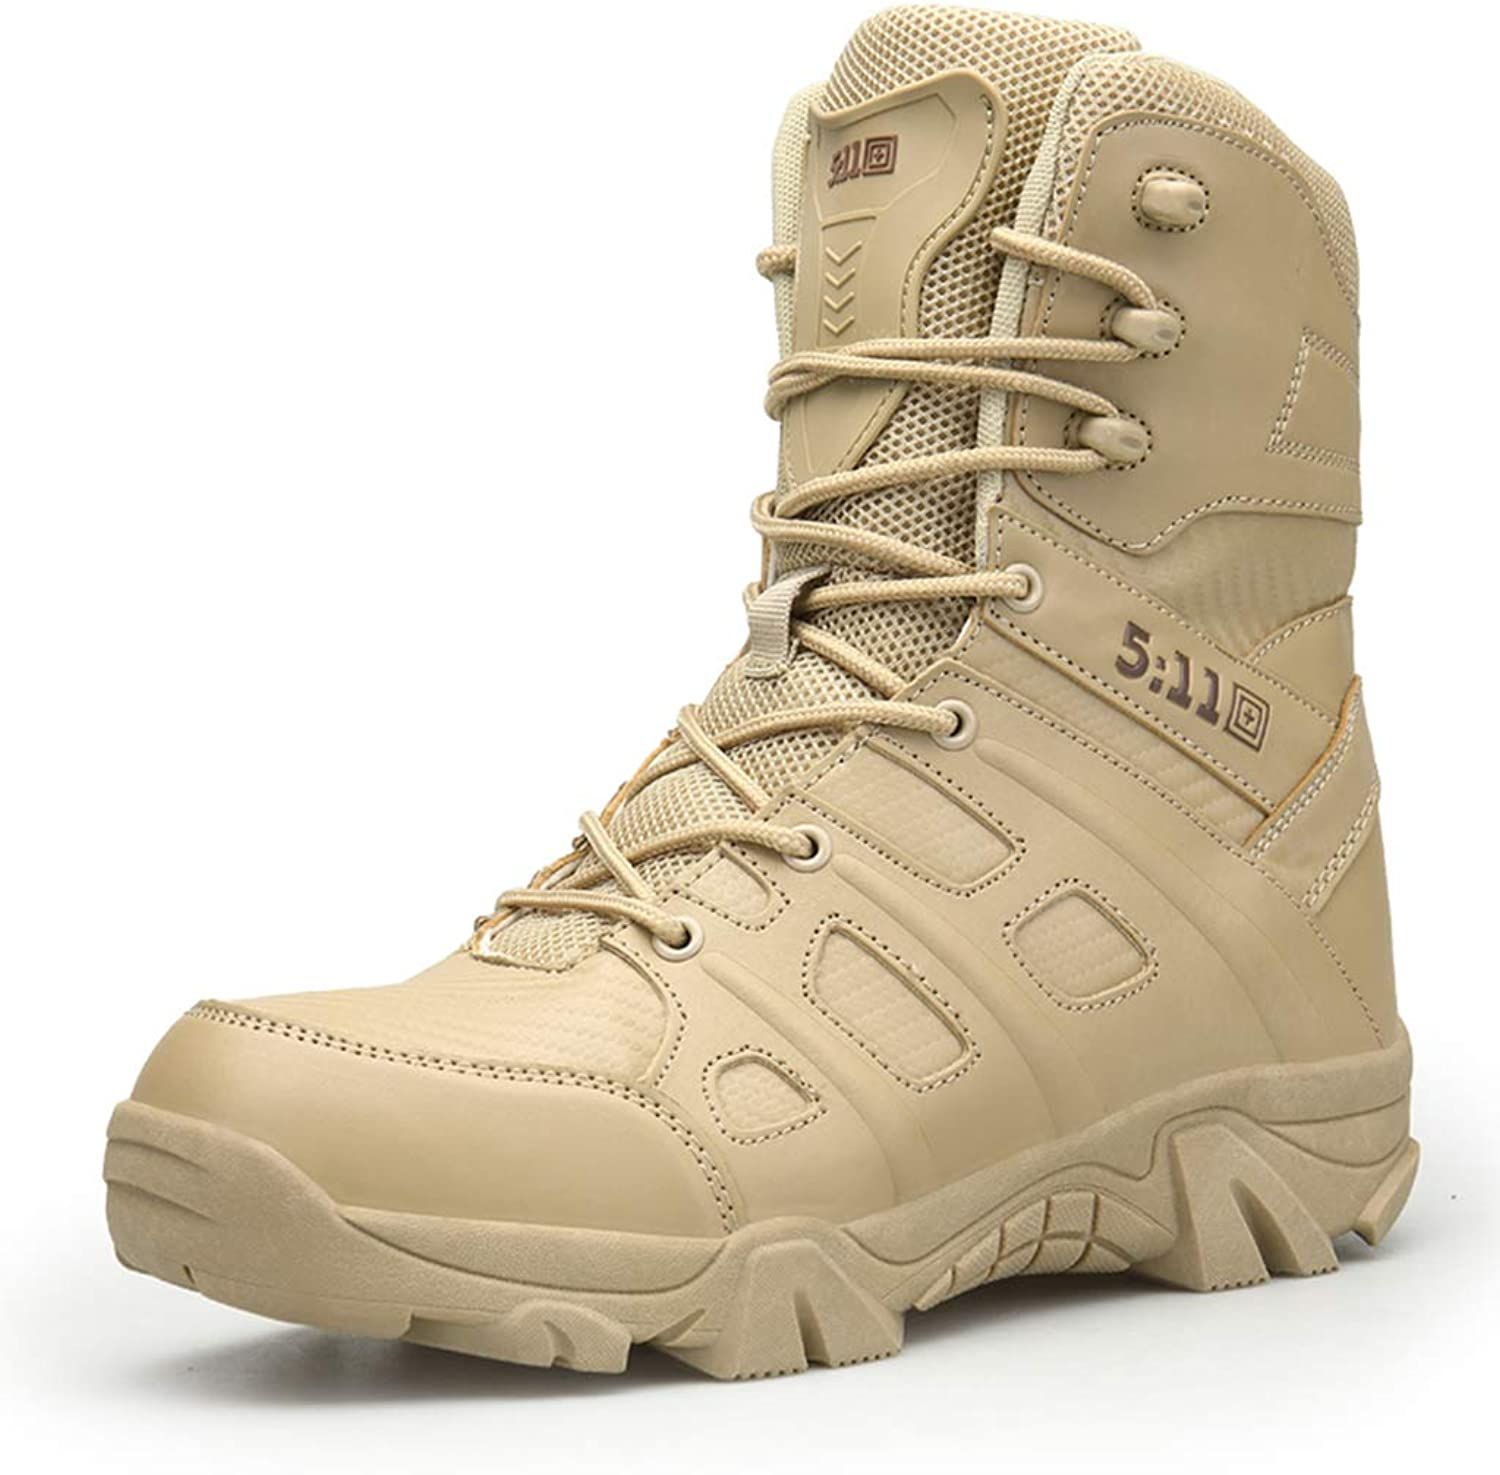 Mens Hiking shoes Breathable Trekking Waterproof High Top Tactical Boots